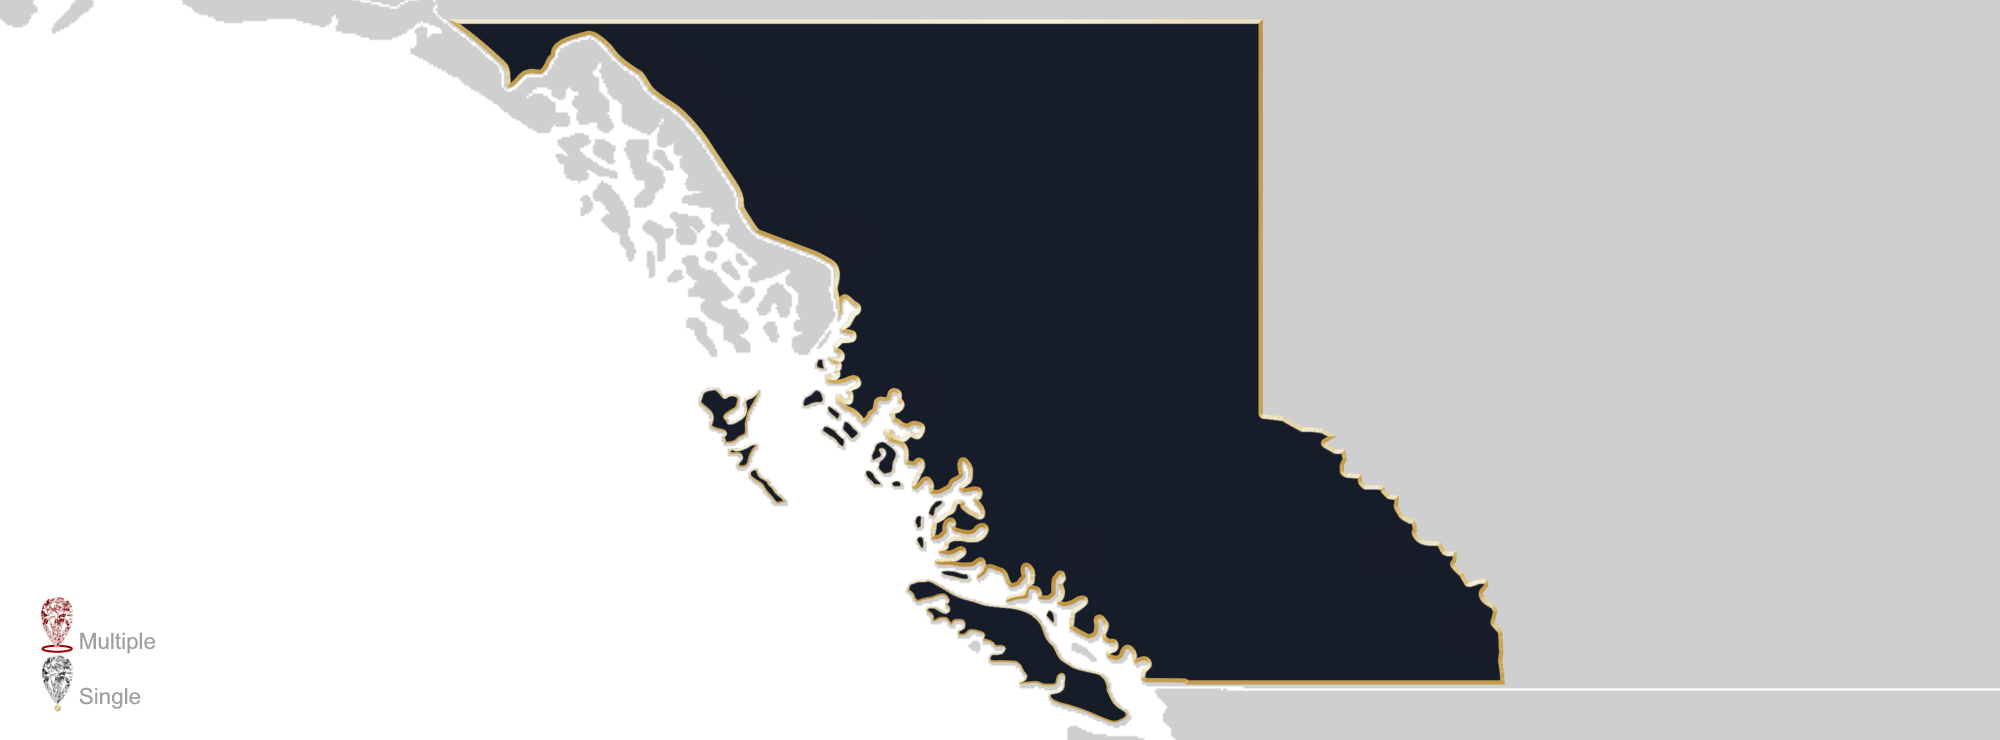 Map showing the location of Jewellery Appraisers in British Columbia